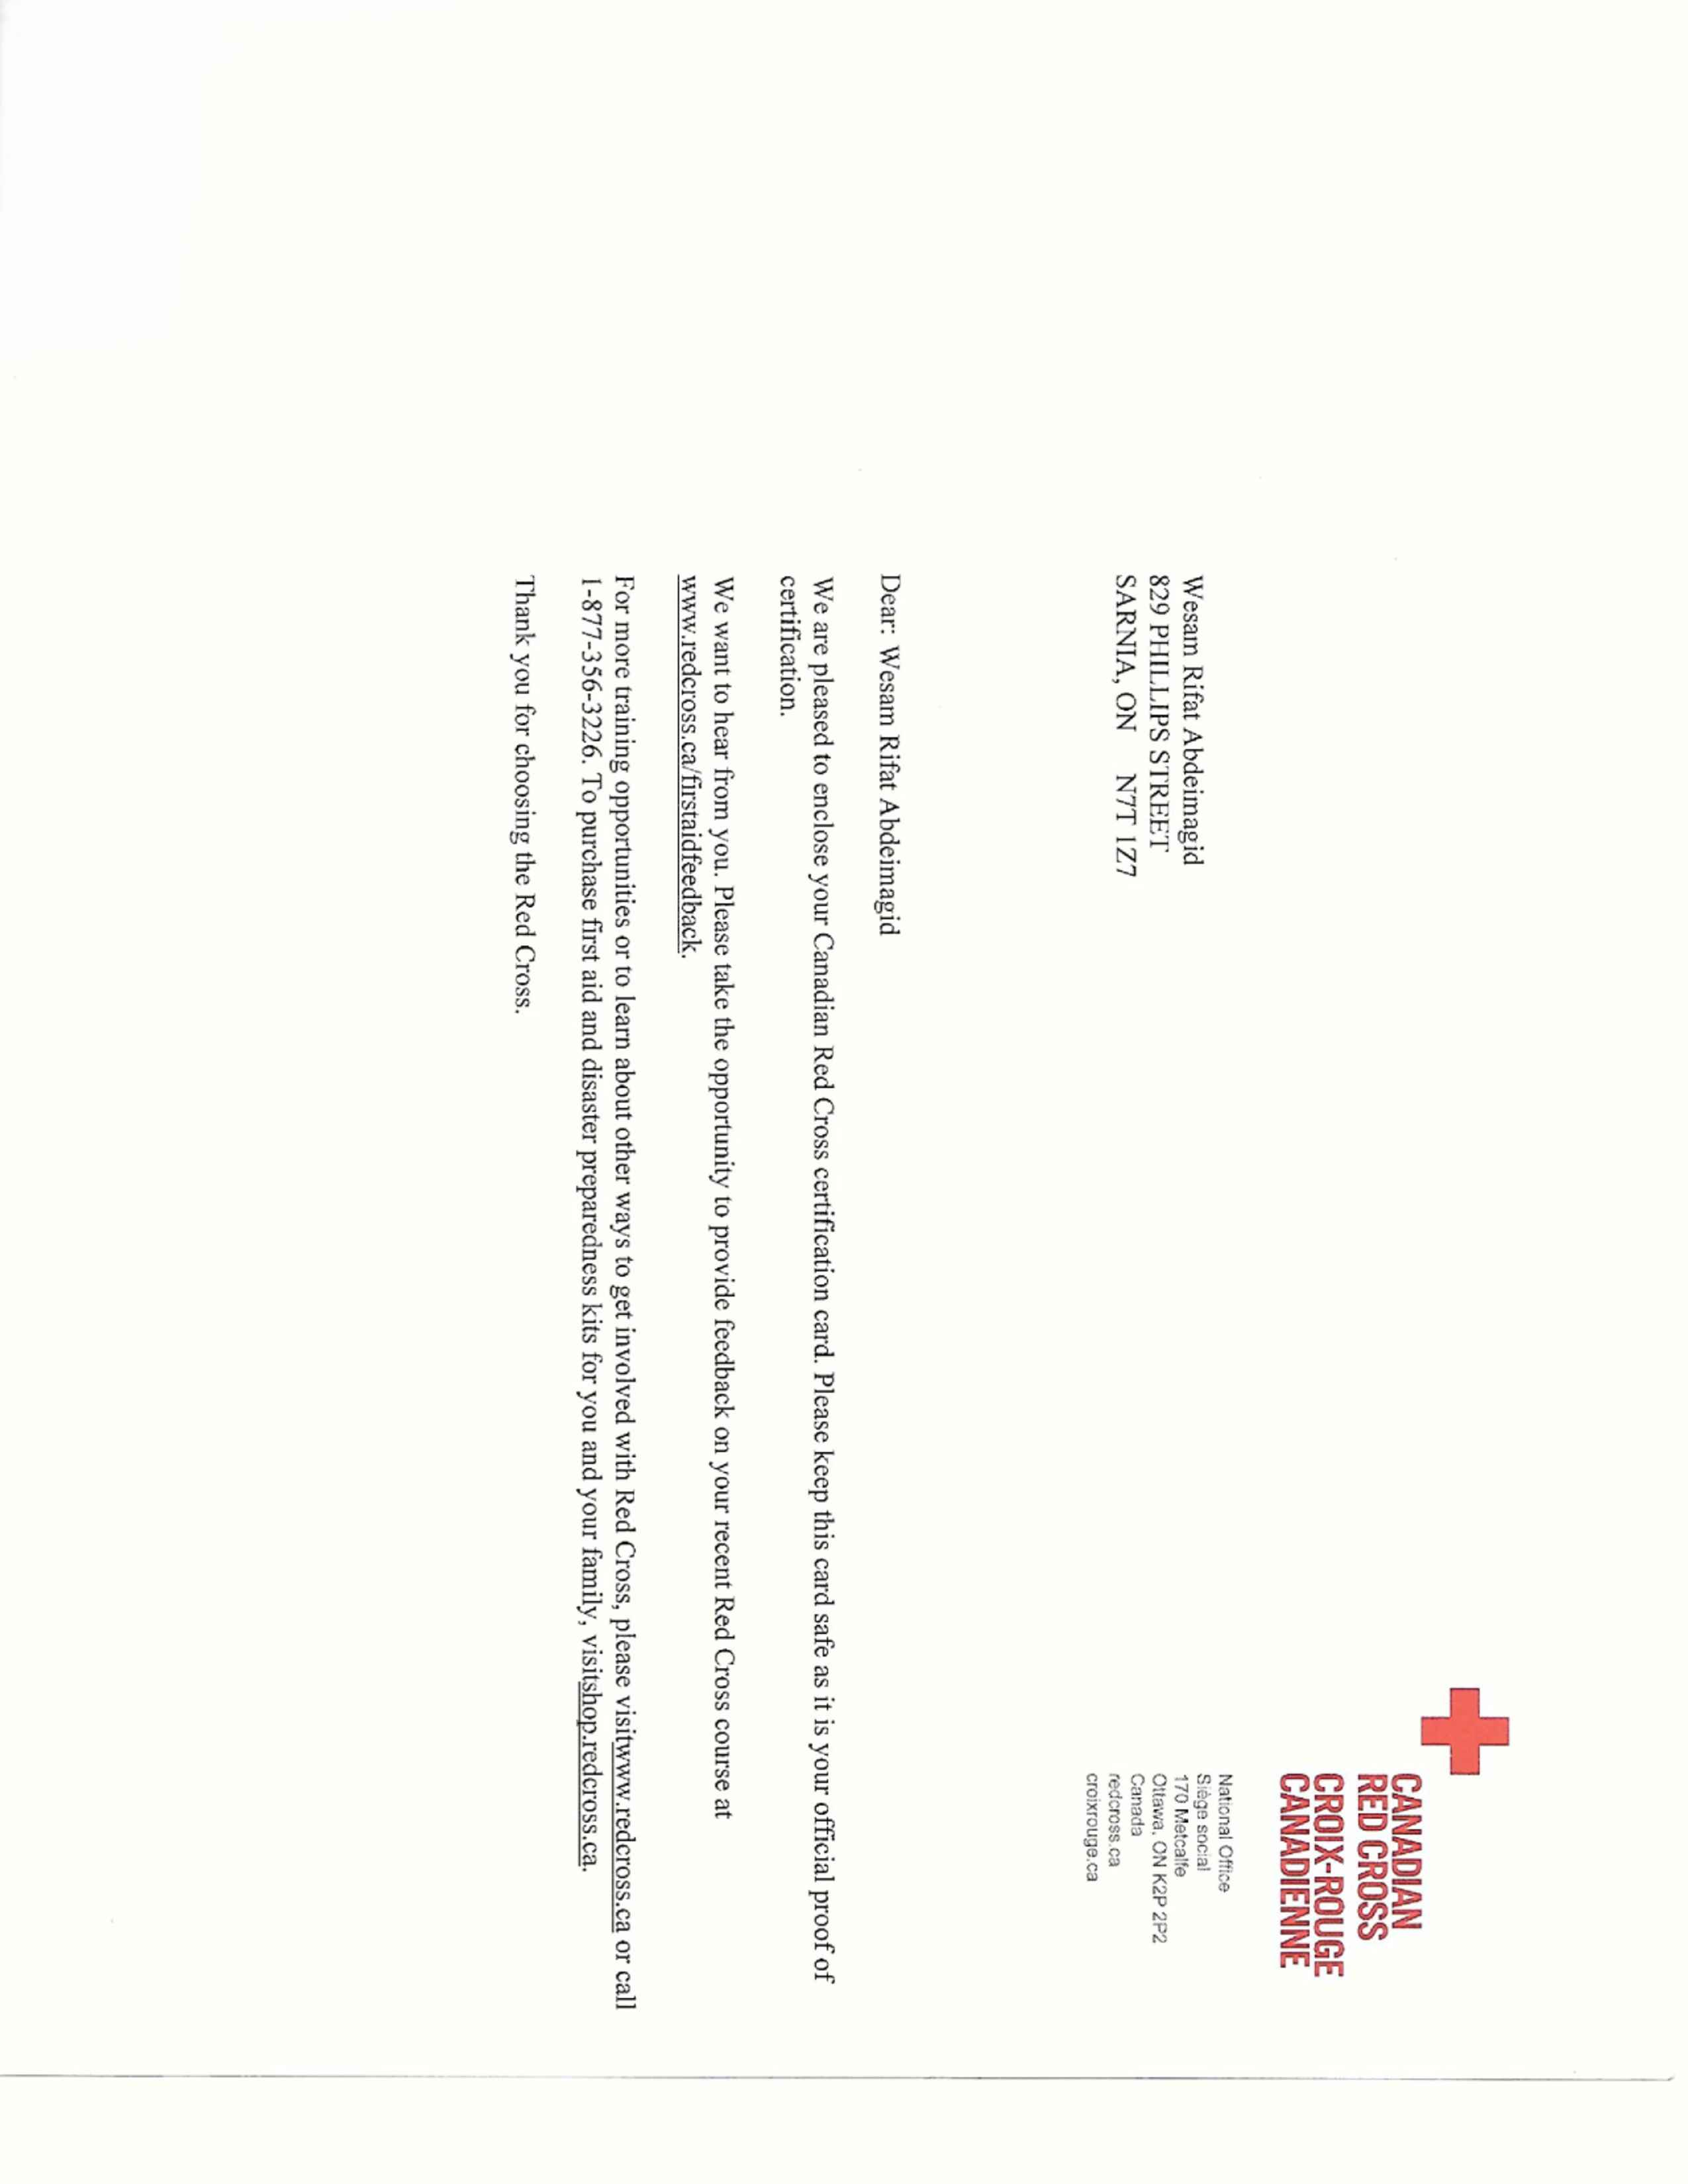 Wesam rifat abdalrhim abdelmagid bayt canadian red cross license certificate 1betcityfo Image collections